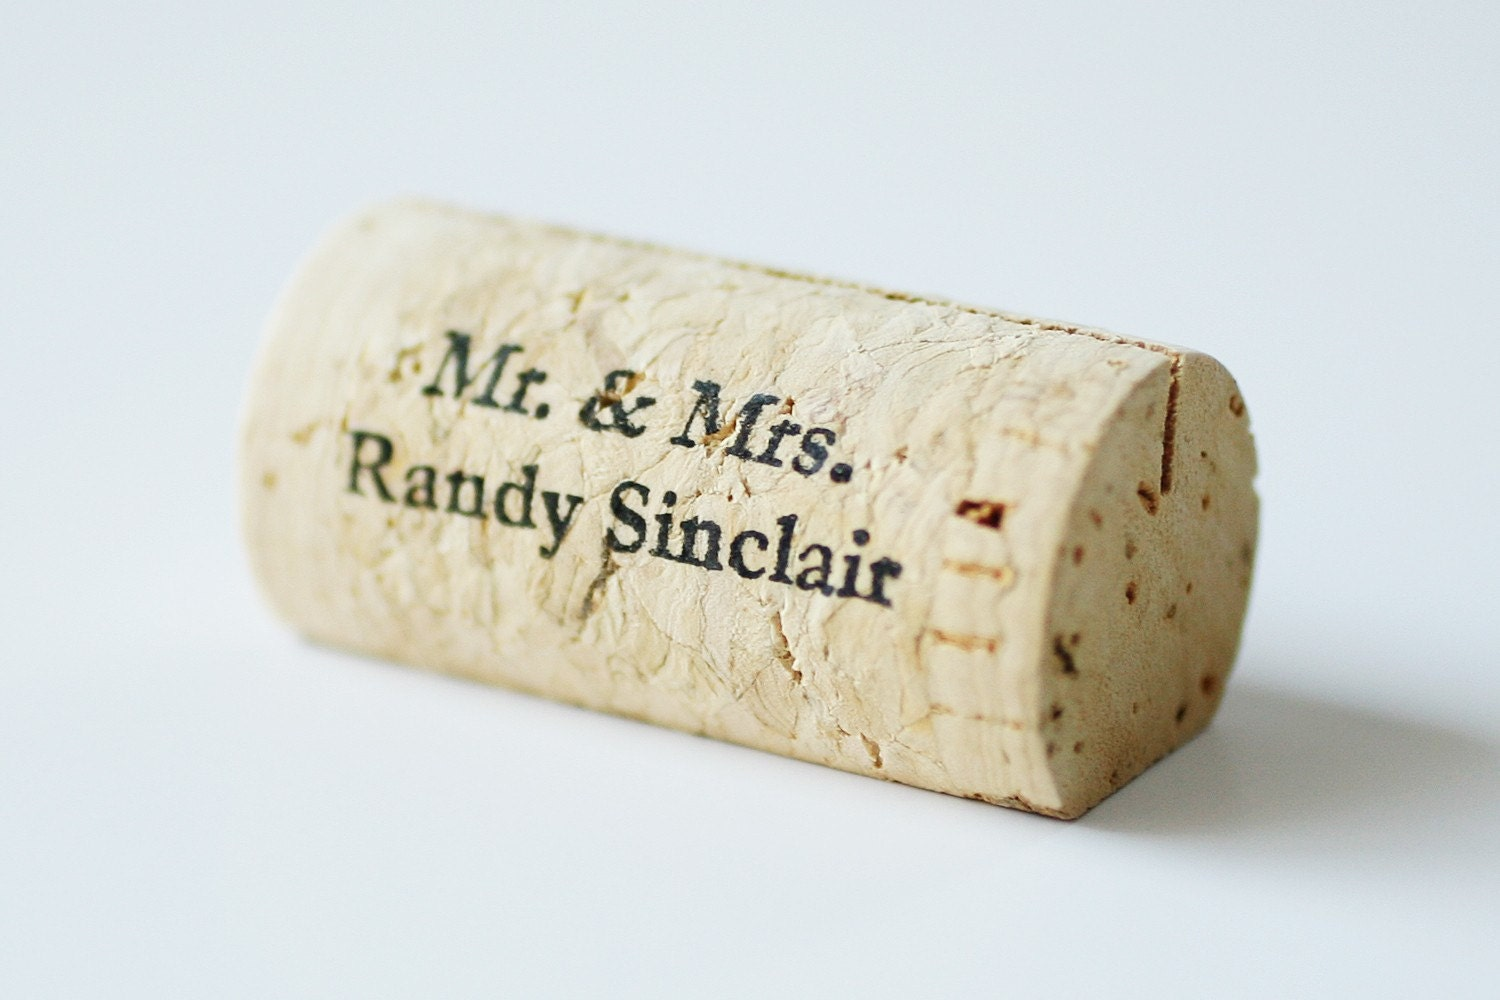 Handmade Weddings on Etsy - Personalized Wine Cork Place Card Holders by CorkeyCreations